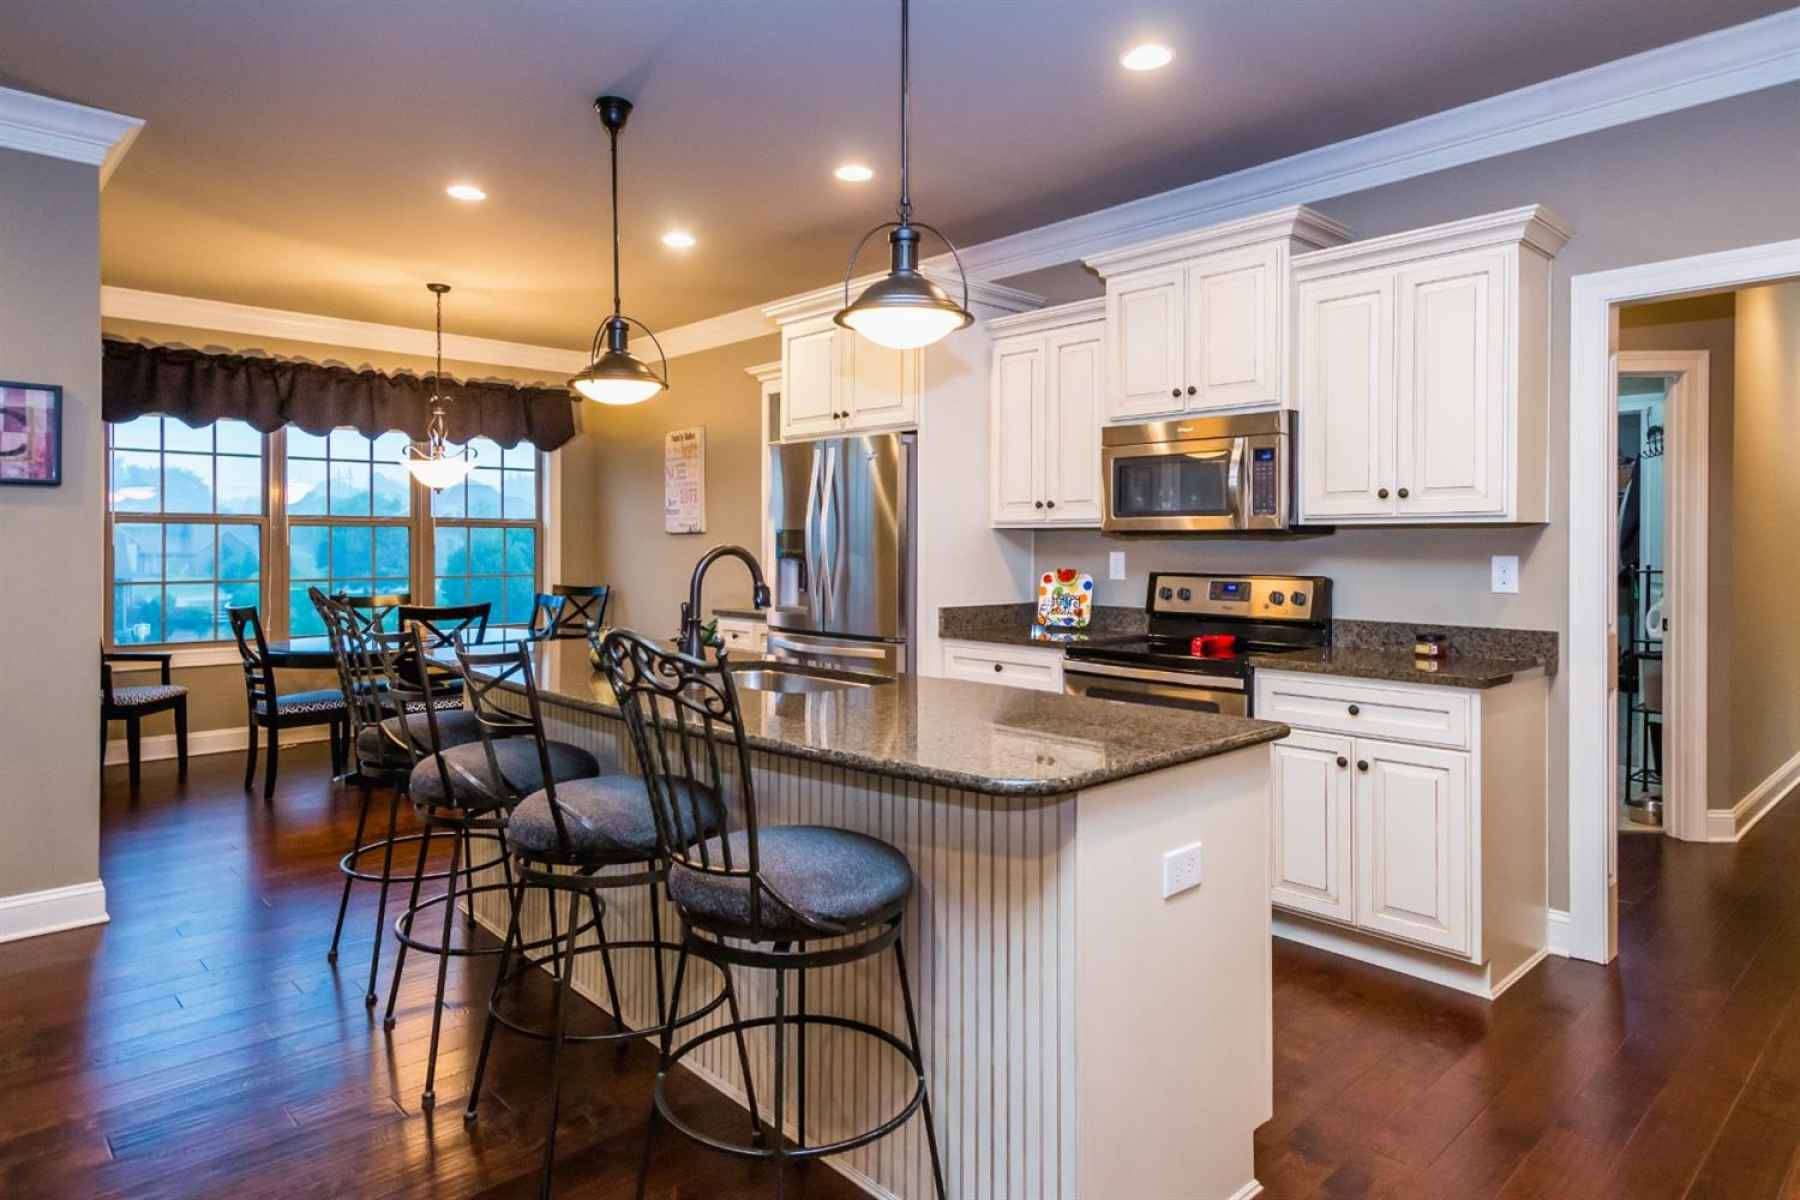 The kitchen has a huge island, granite counters, beautiful cabinets, a side-by-side refrigerator, dishwasher, smooth-top range, microwave, & a walk-in pantry!